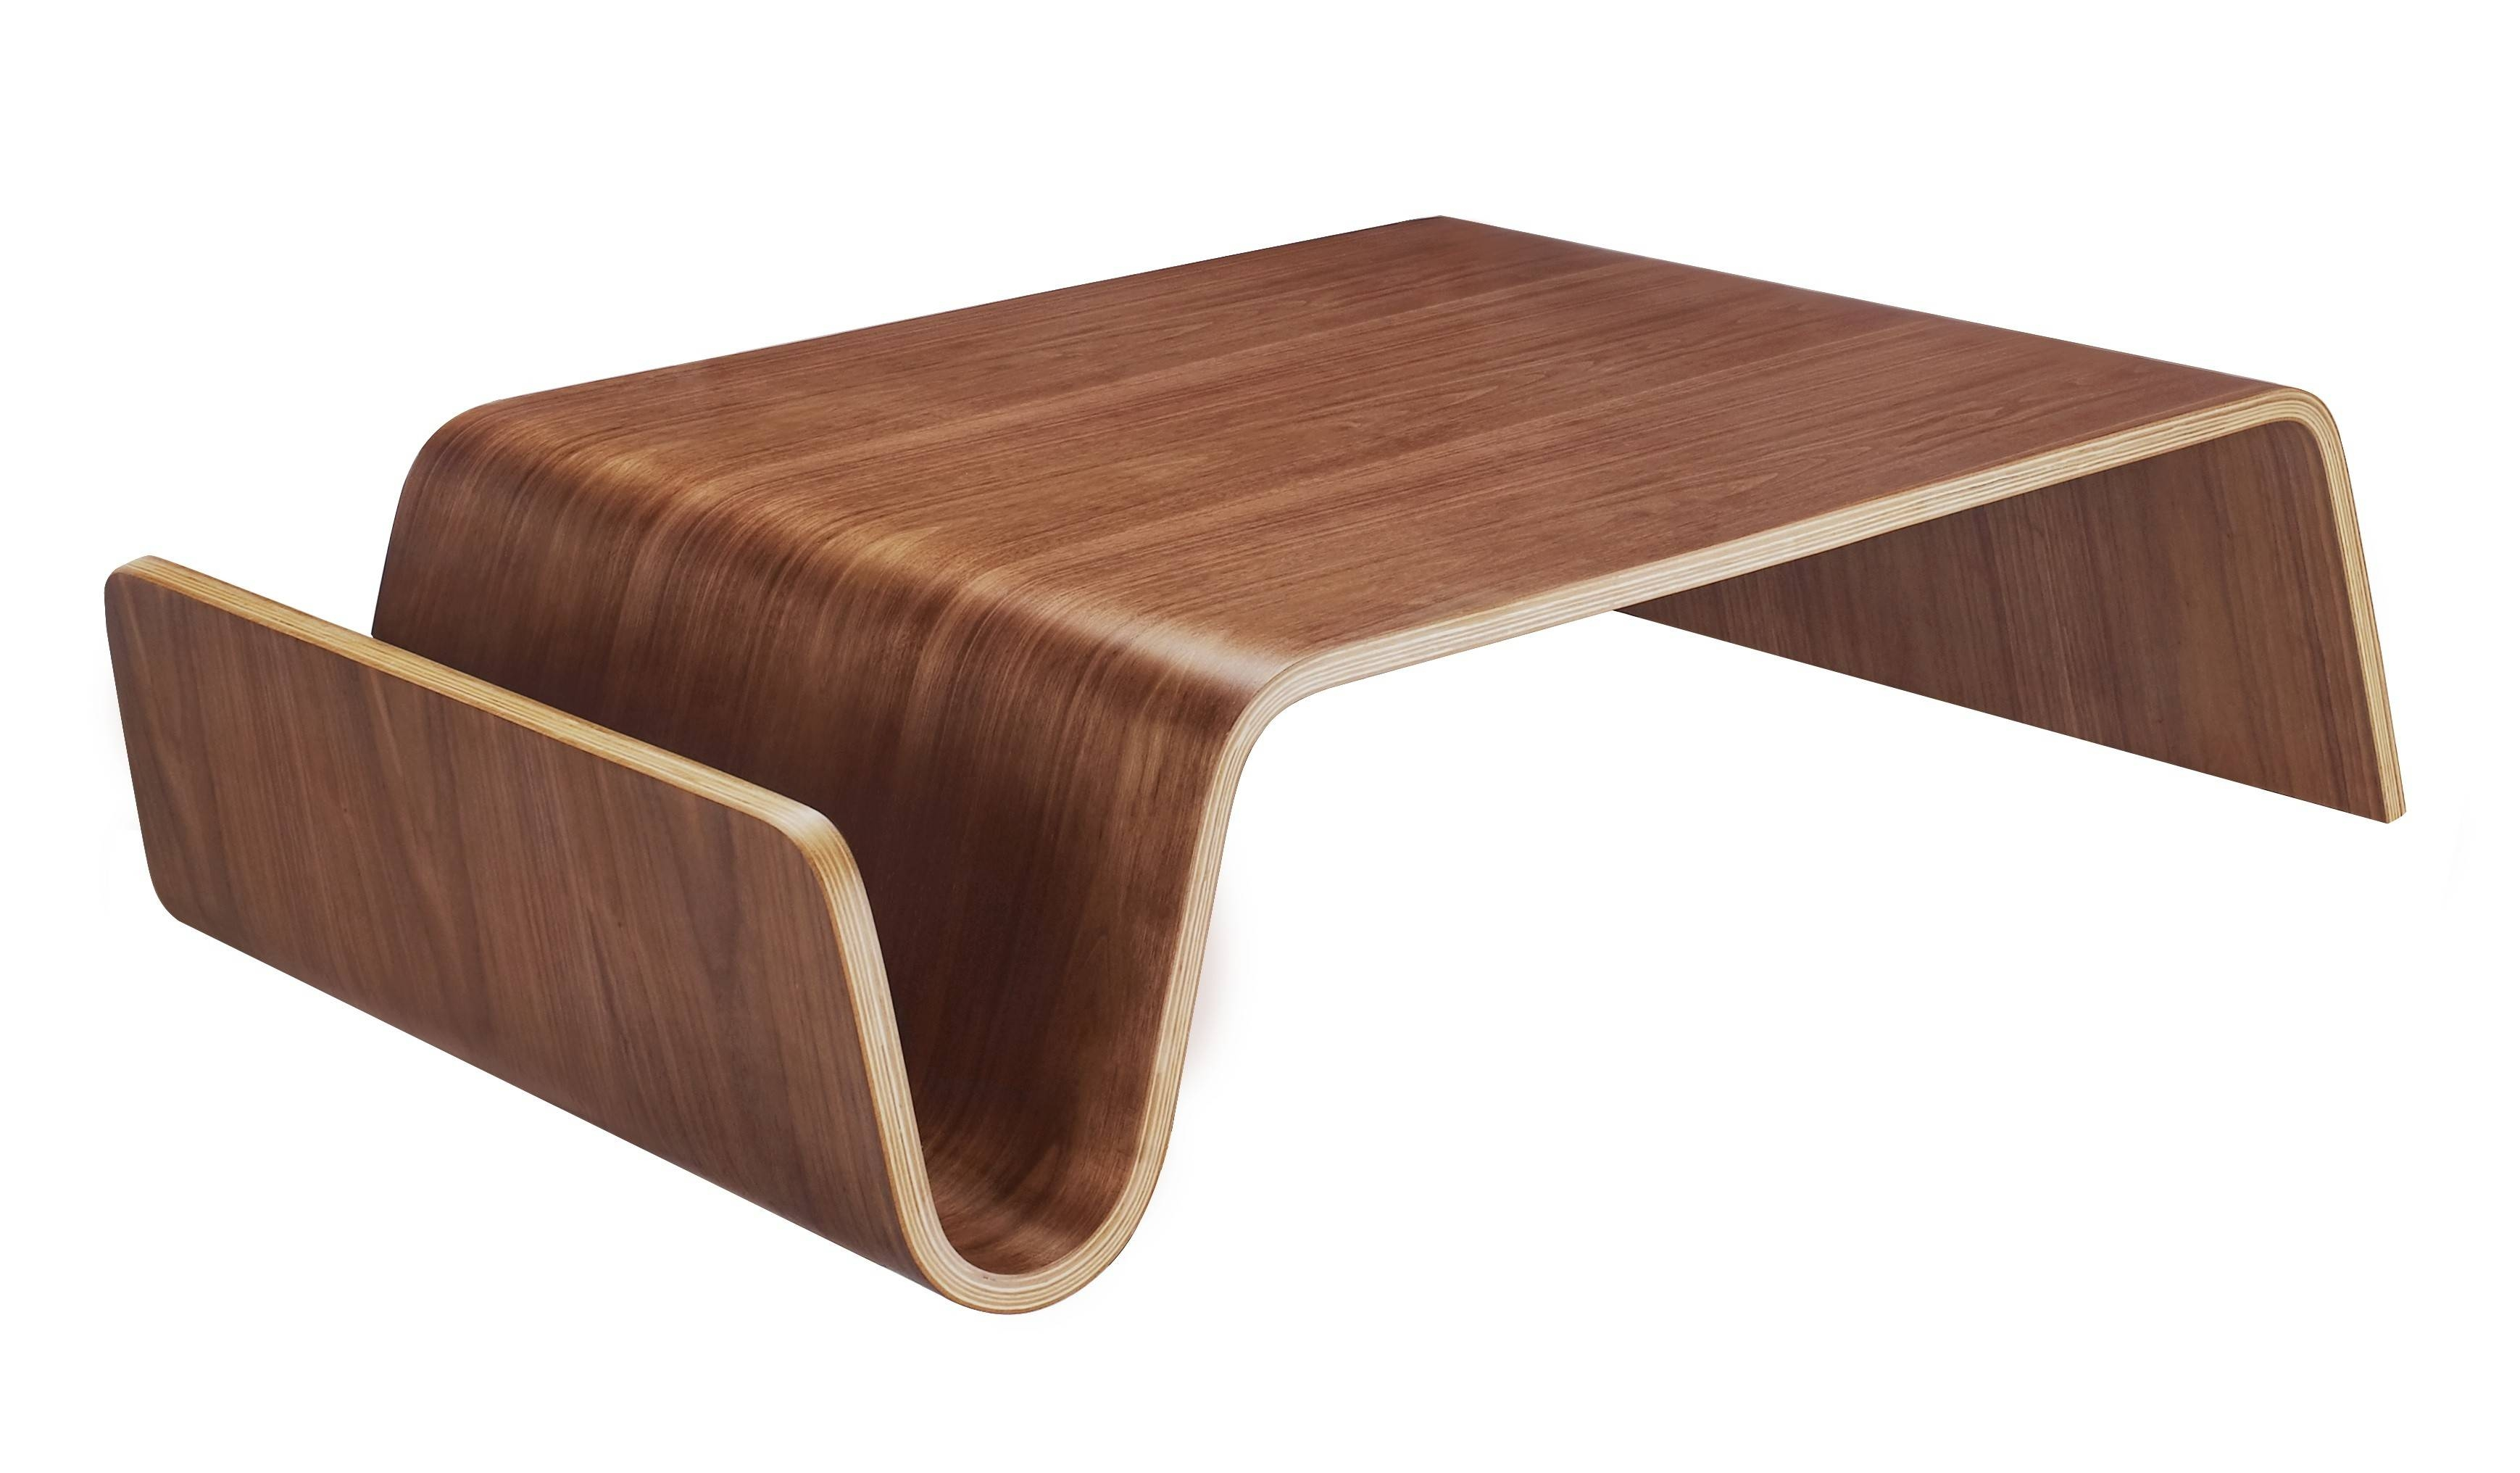 Elephant Coffee Table Uk - Coffee Addicts intended for Elephant Coffee Tables (Image 17 of 30)